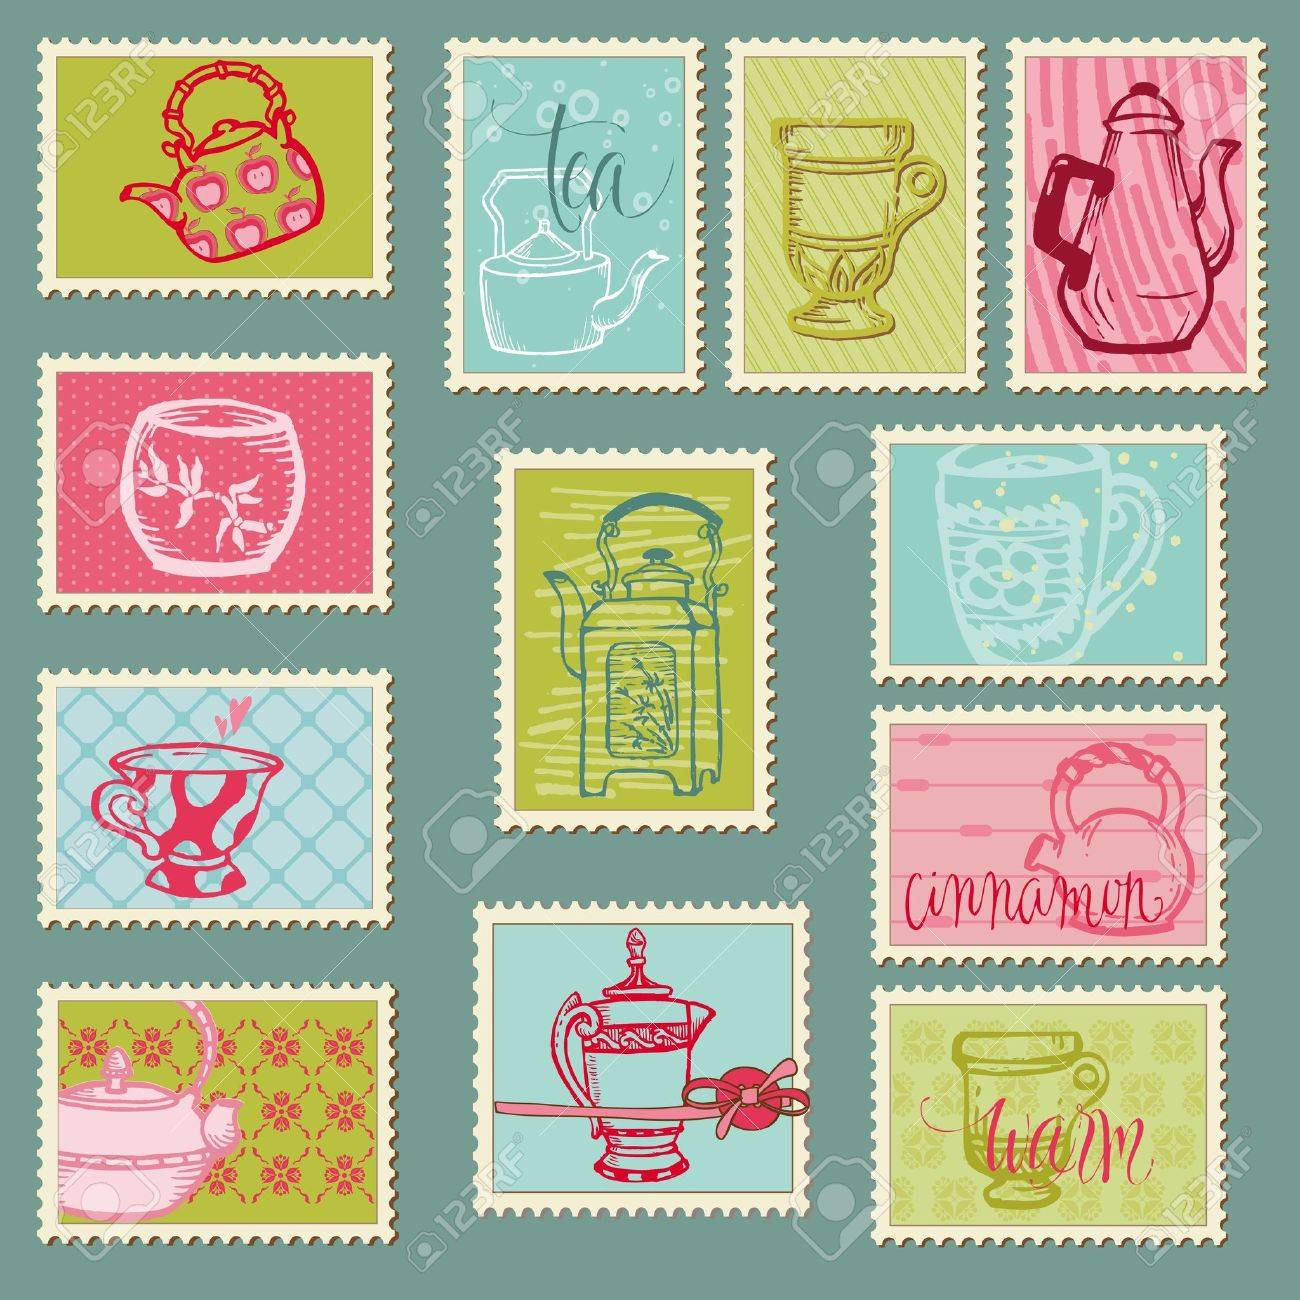 Funny Teapots and Cups Postage Stamps - for design, invitation, congratulation, scrapbook Stock Vector - 12185890